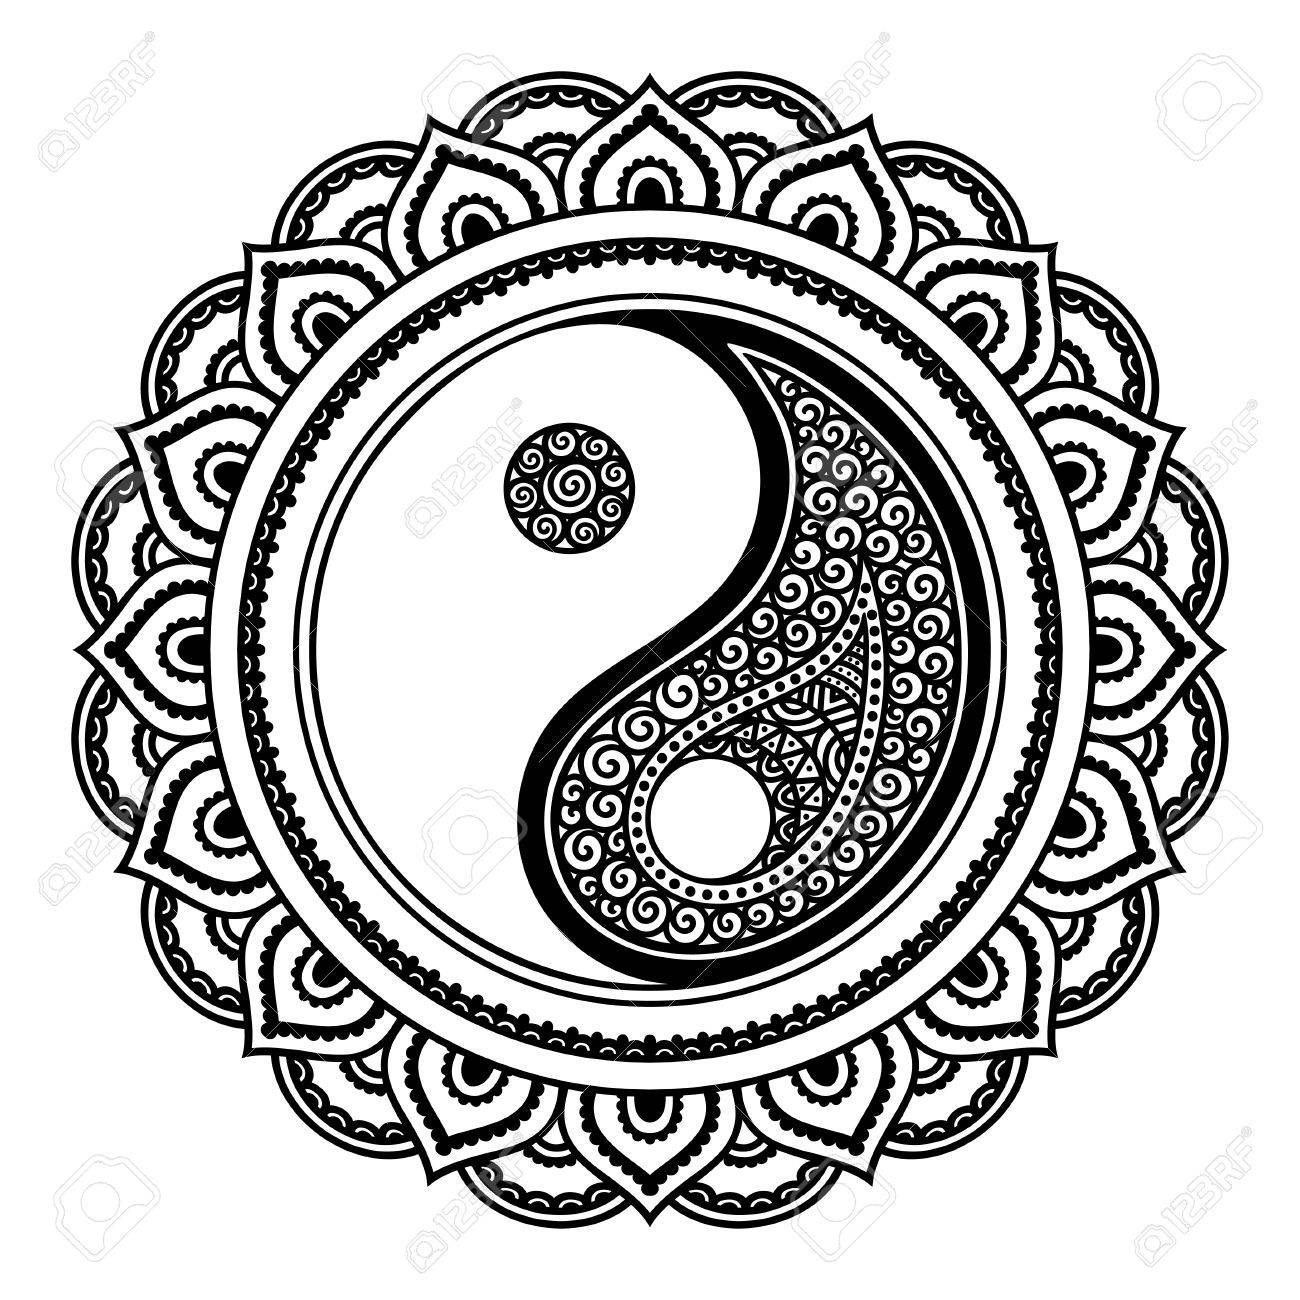 Yin Yang Drawing Design At Getdrawings